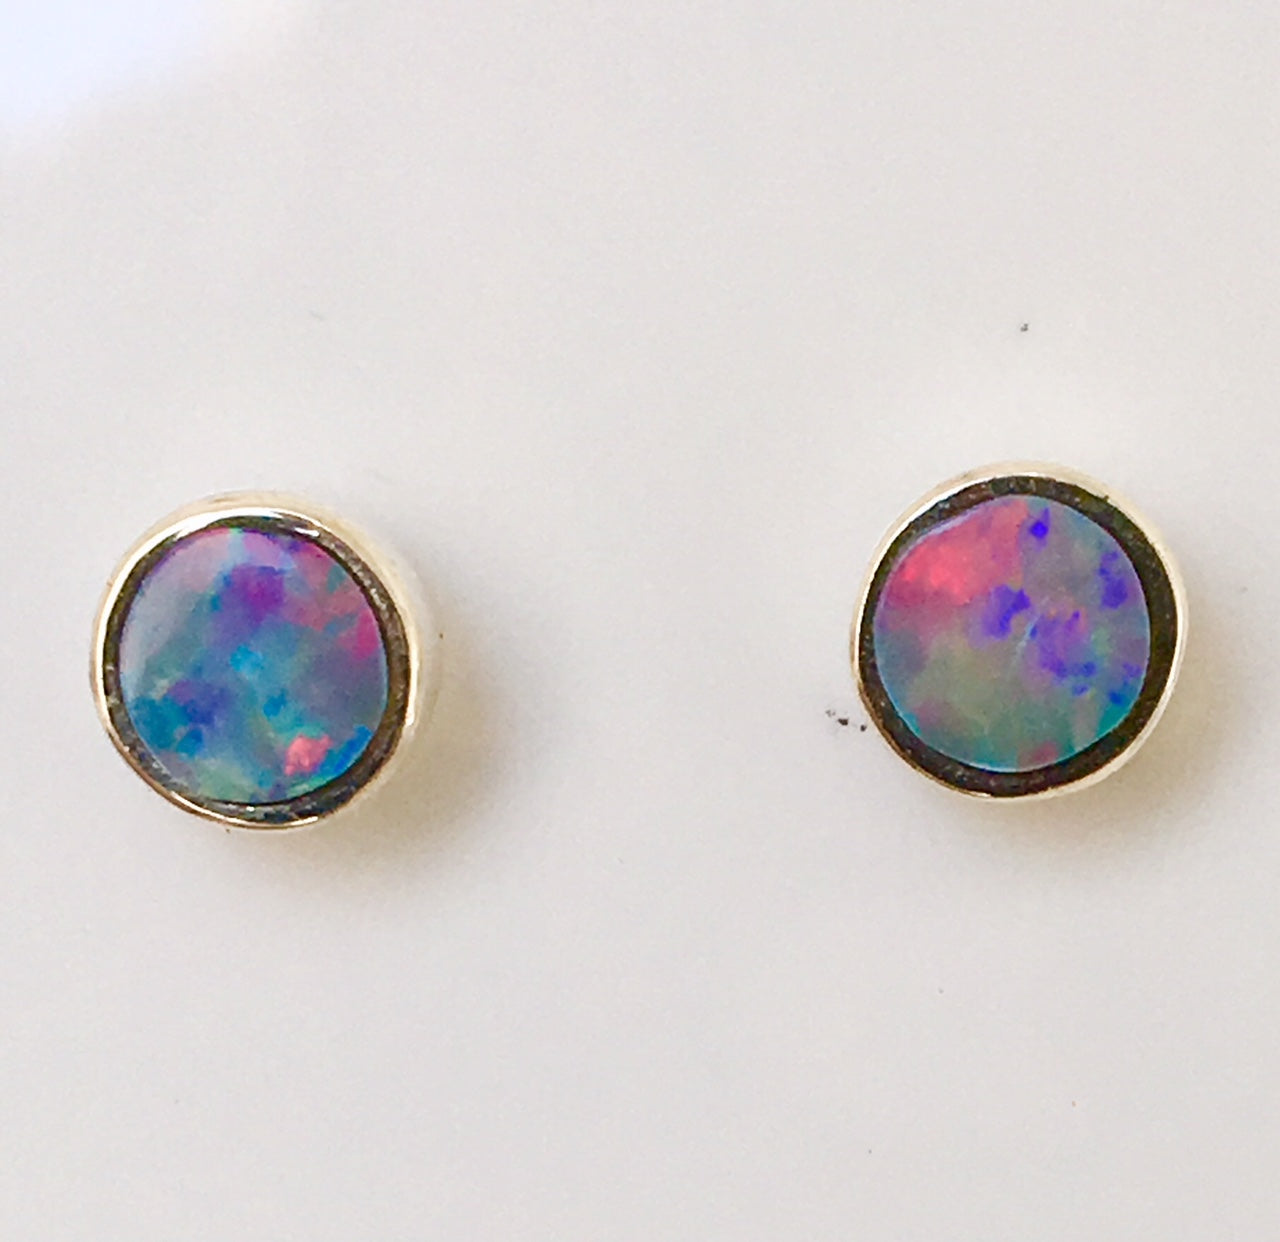 arch stud marble pink pastel textured sunrise earring LUCERO